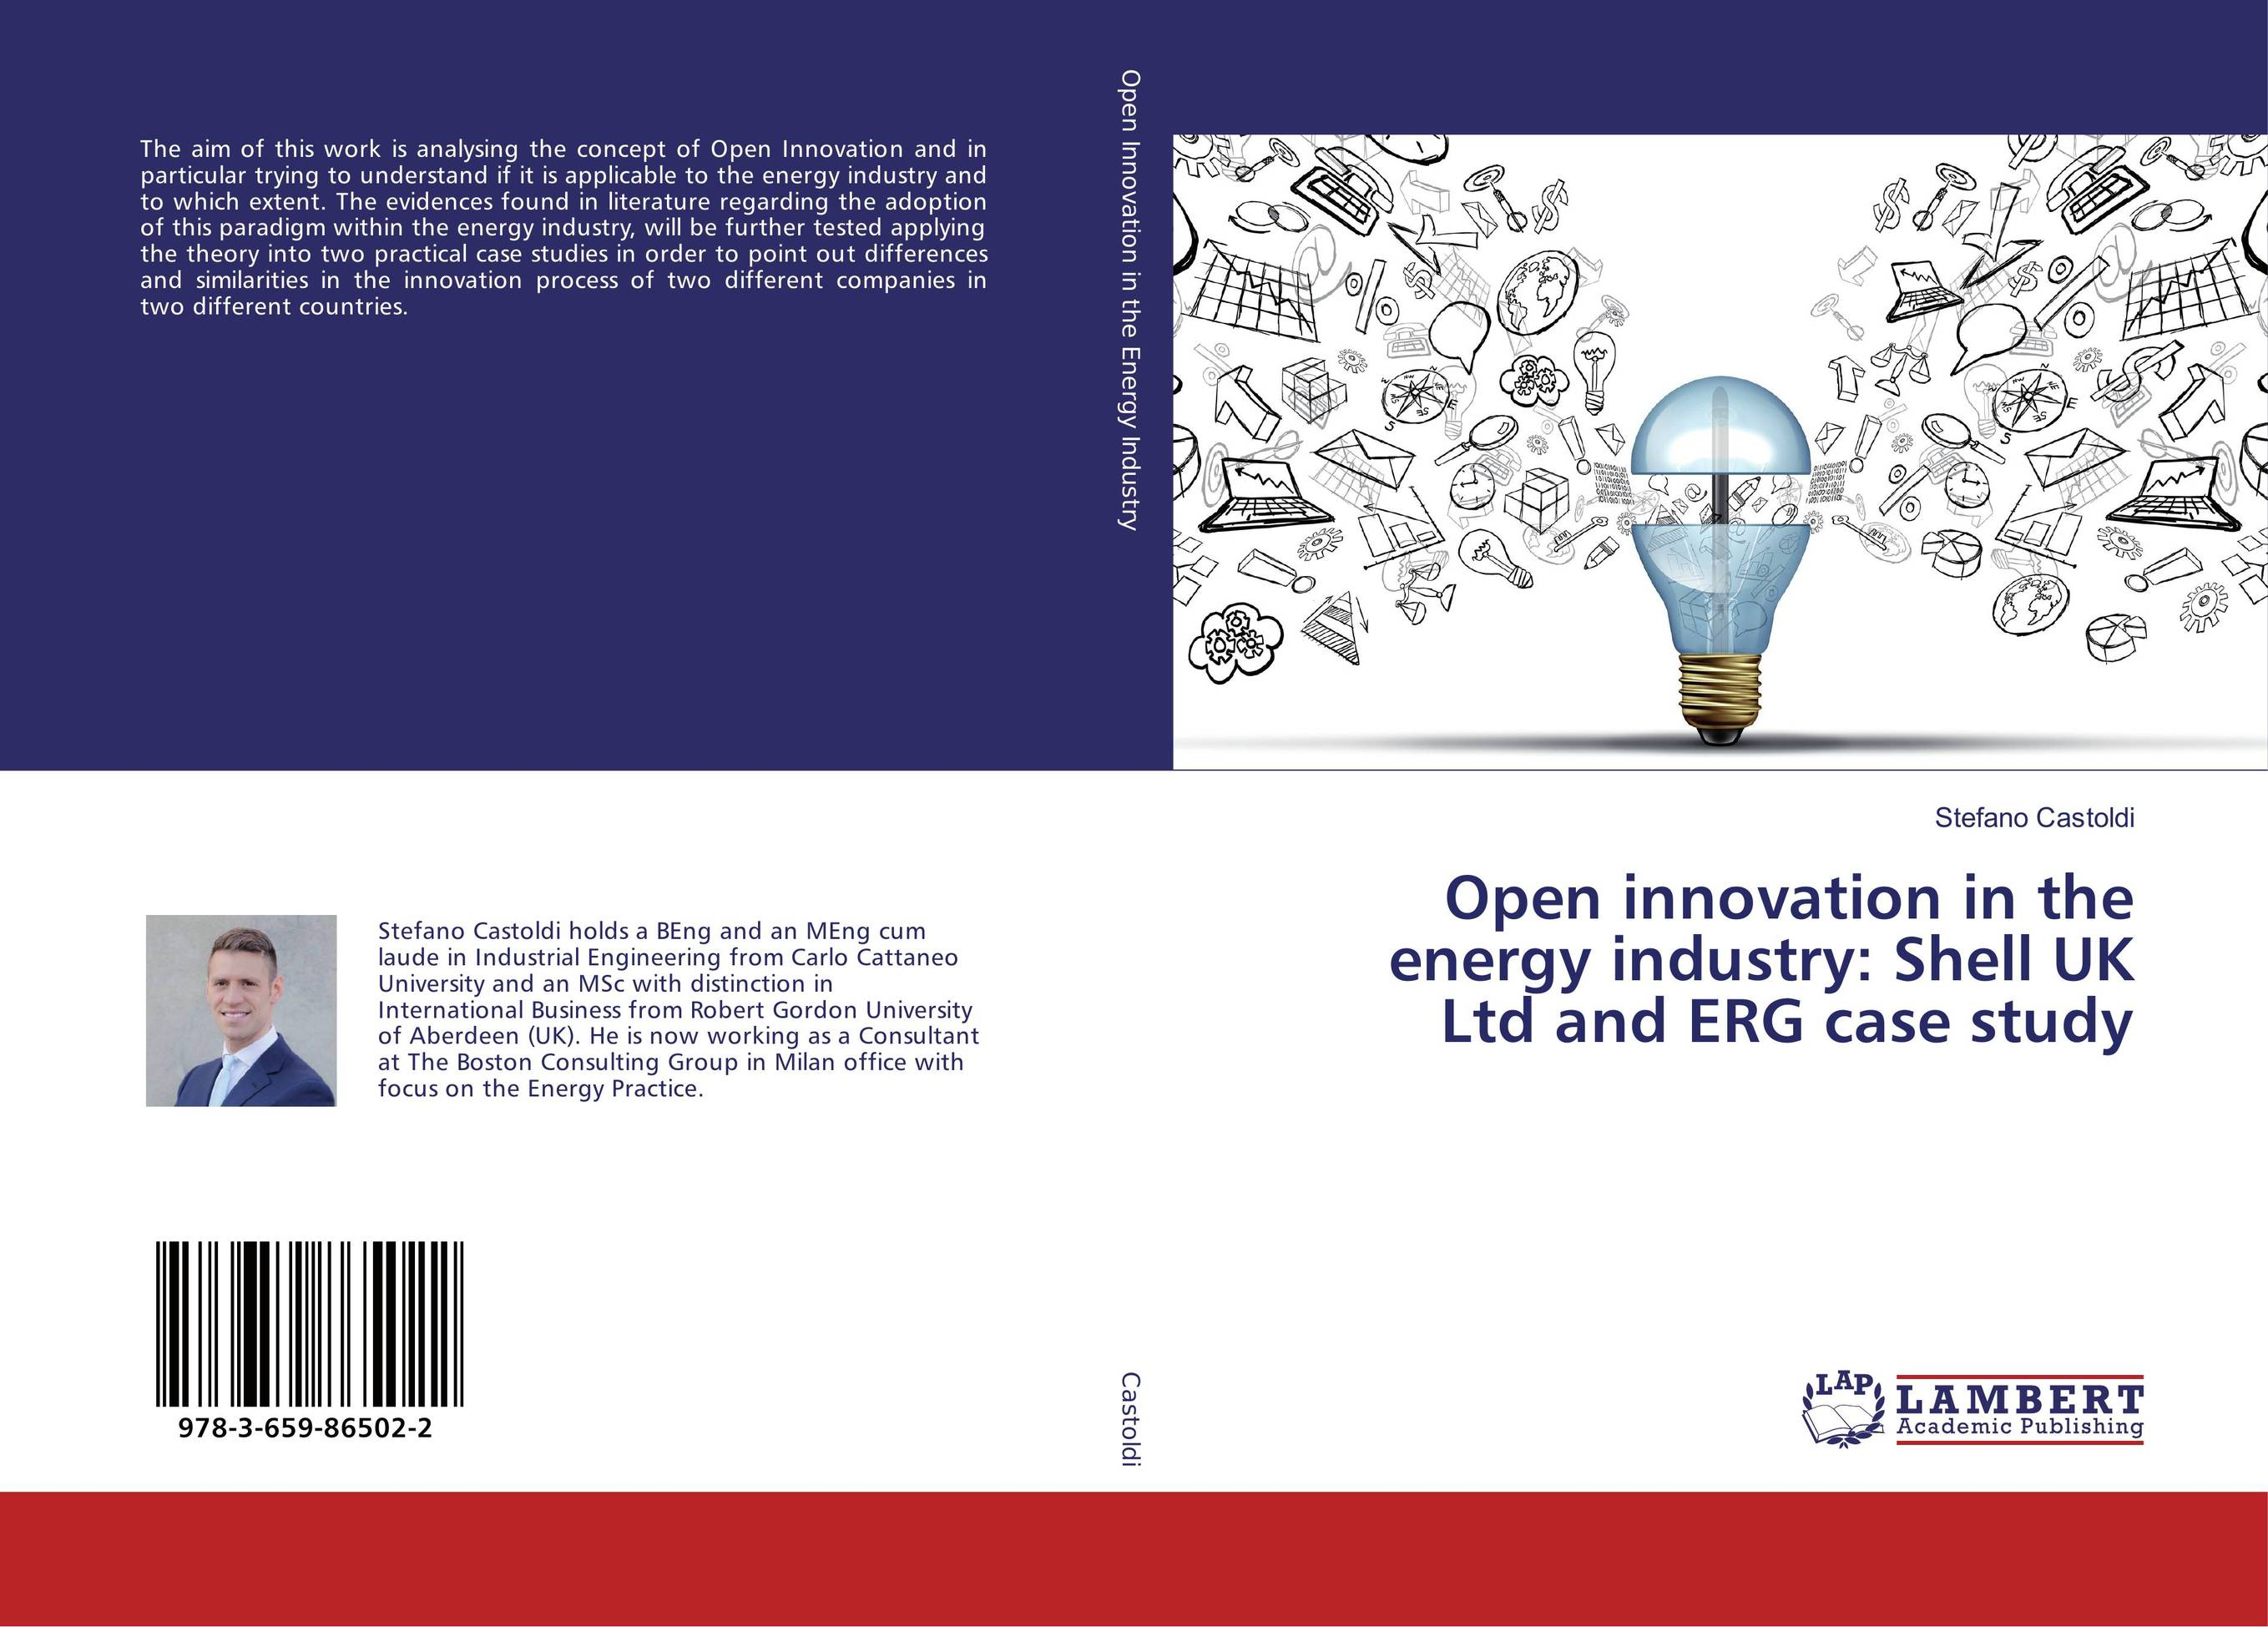 Open innovation in the energy industry: Shell UK Ltd and ERG case study found in brooklyn